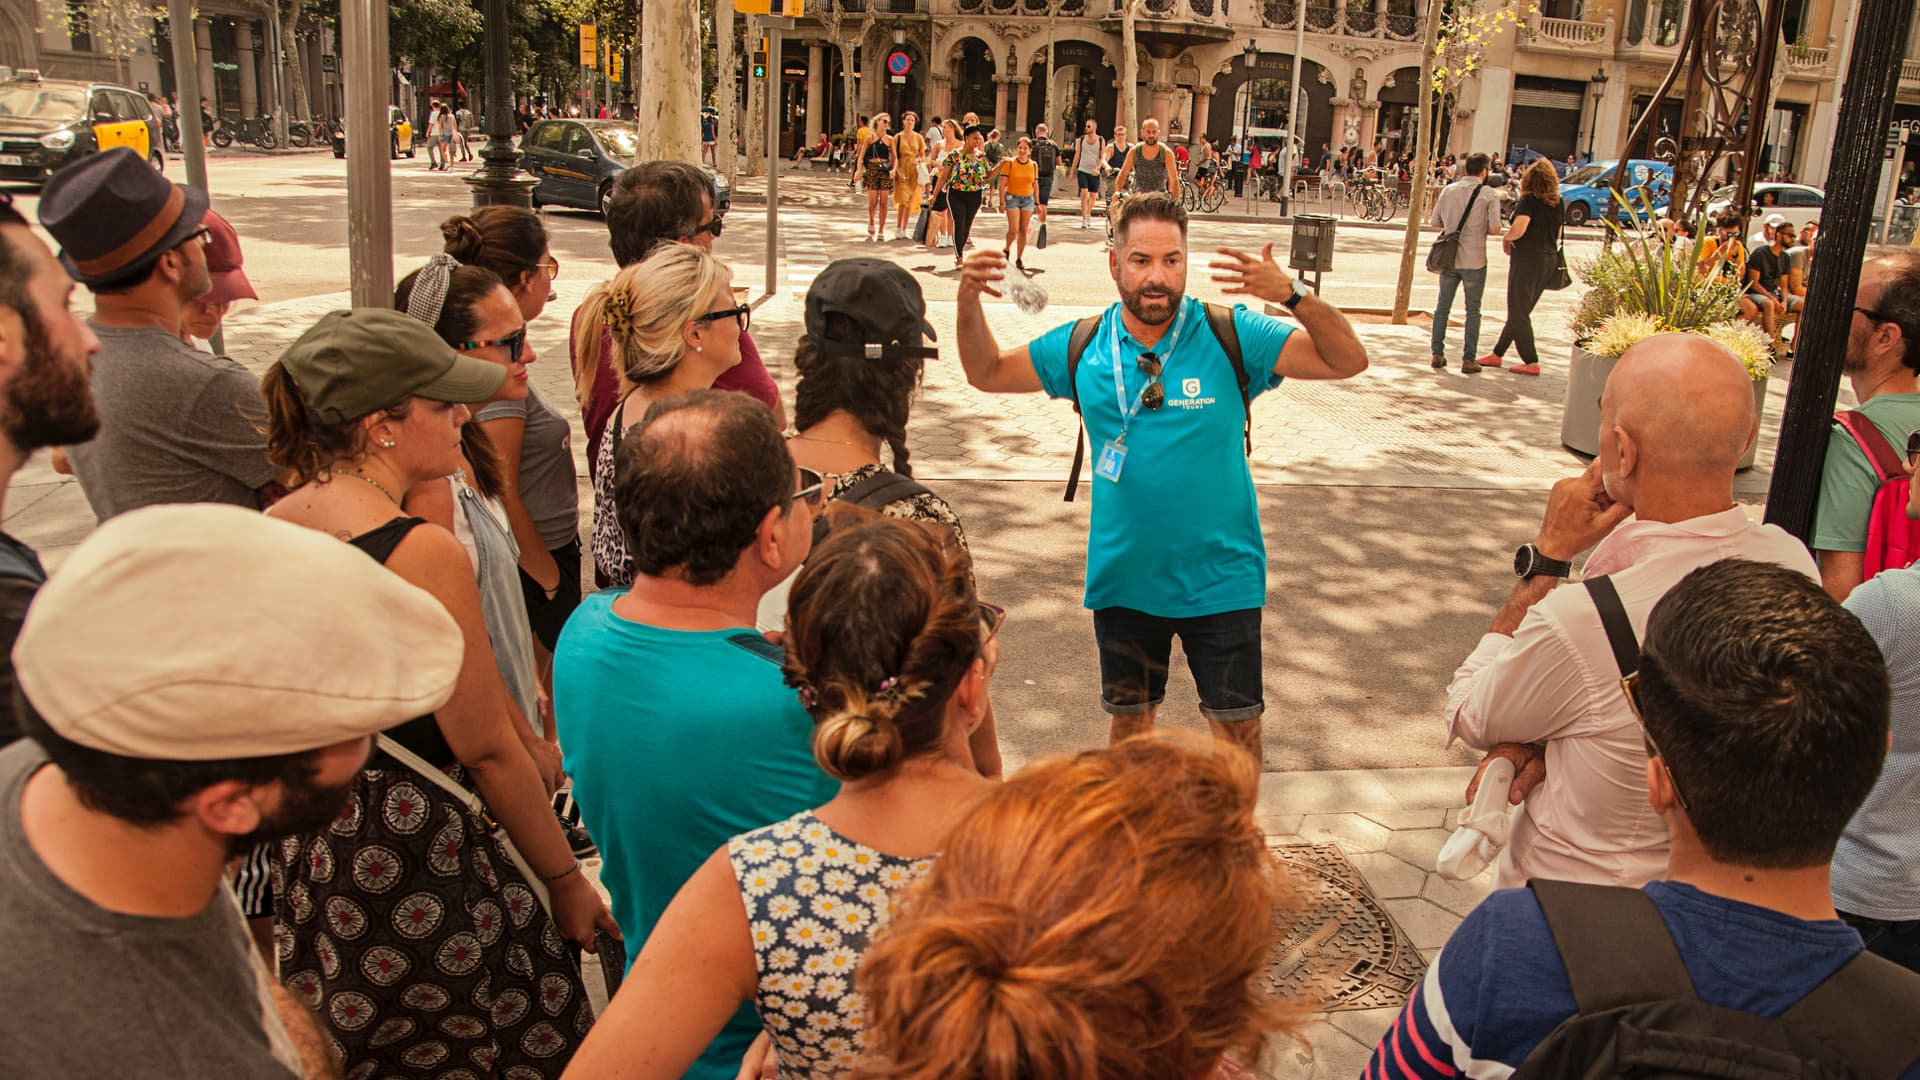 Free Gaudi tour of Barcelona by HostelCulture